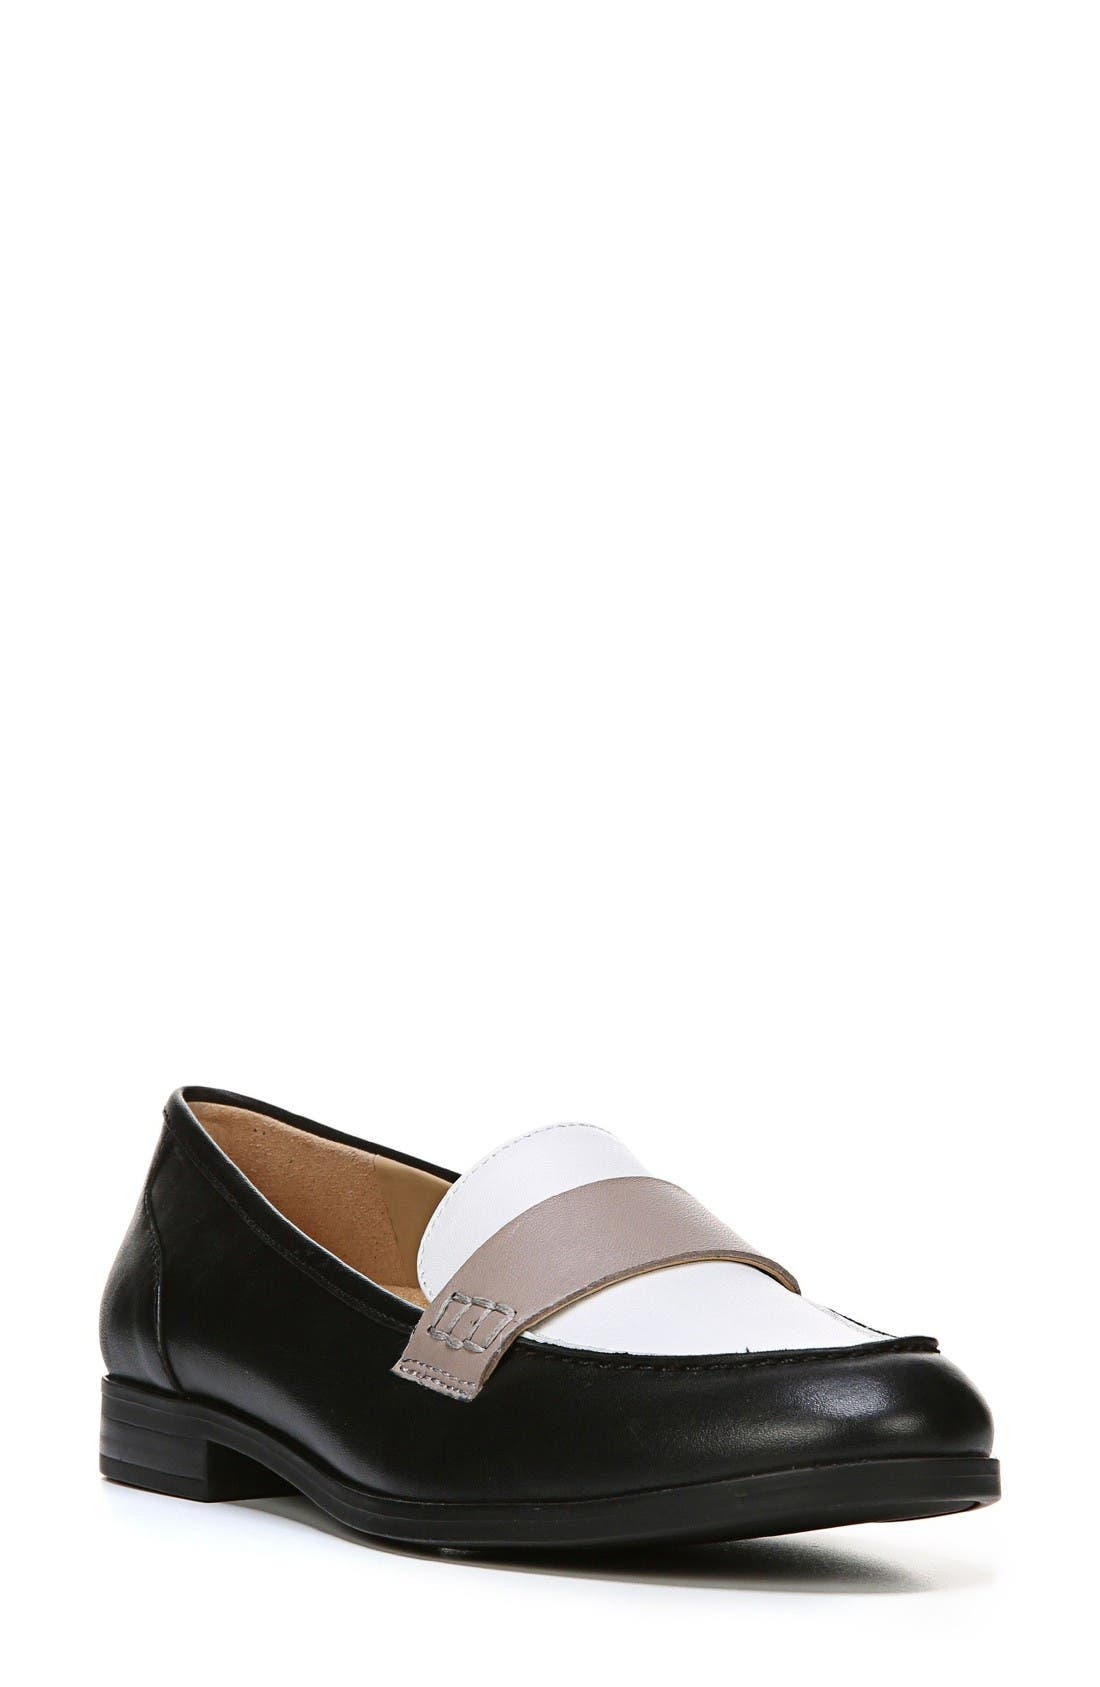 Alternate Image 1 Selected - Naturalizer Veronica Loafer (Women)